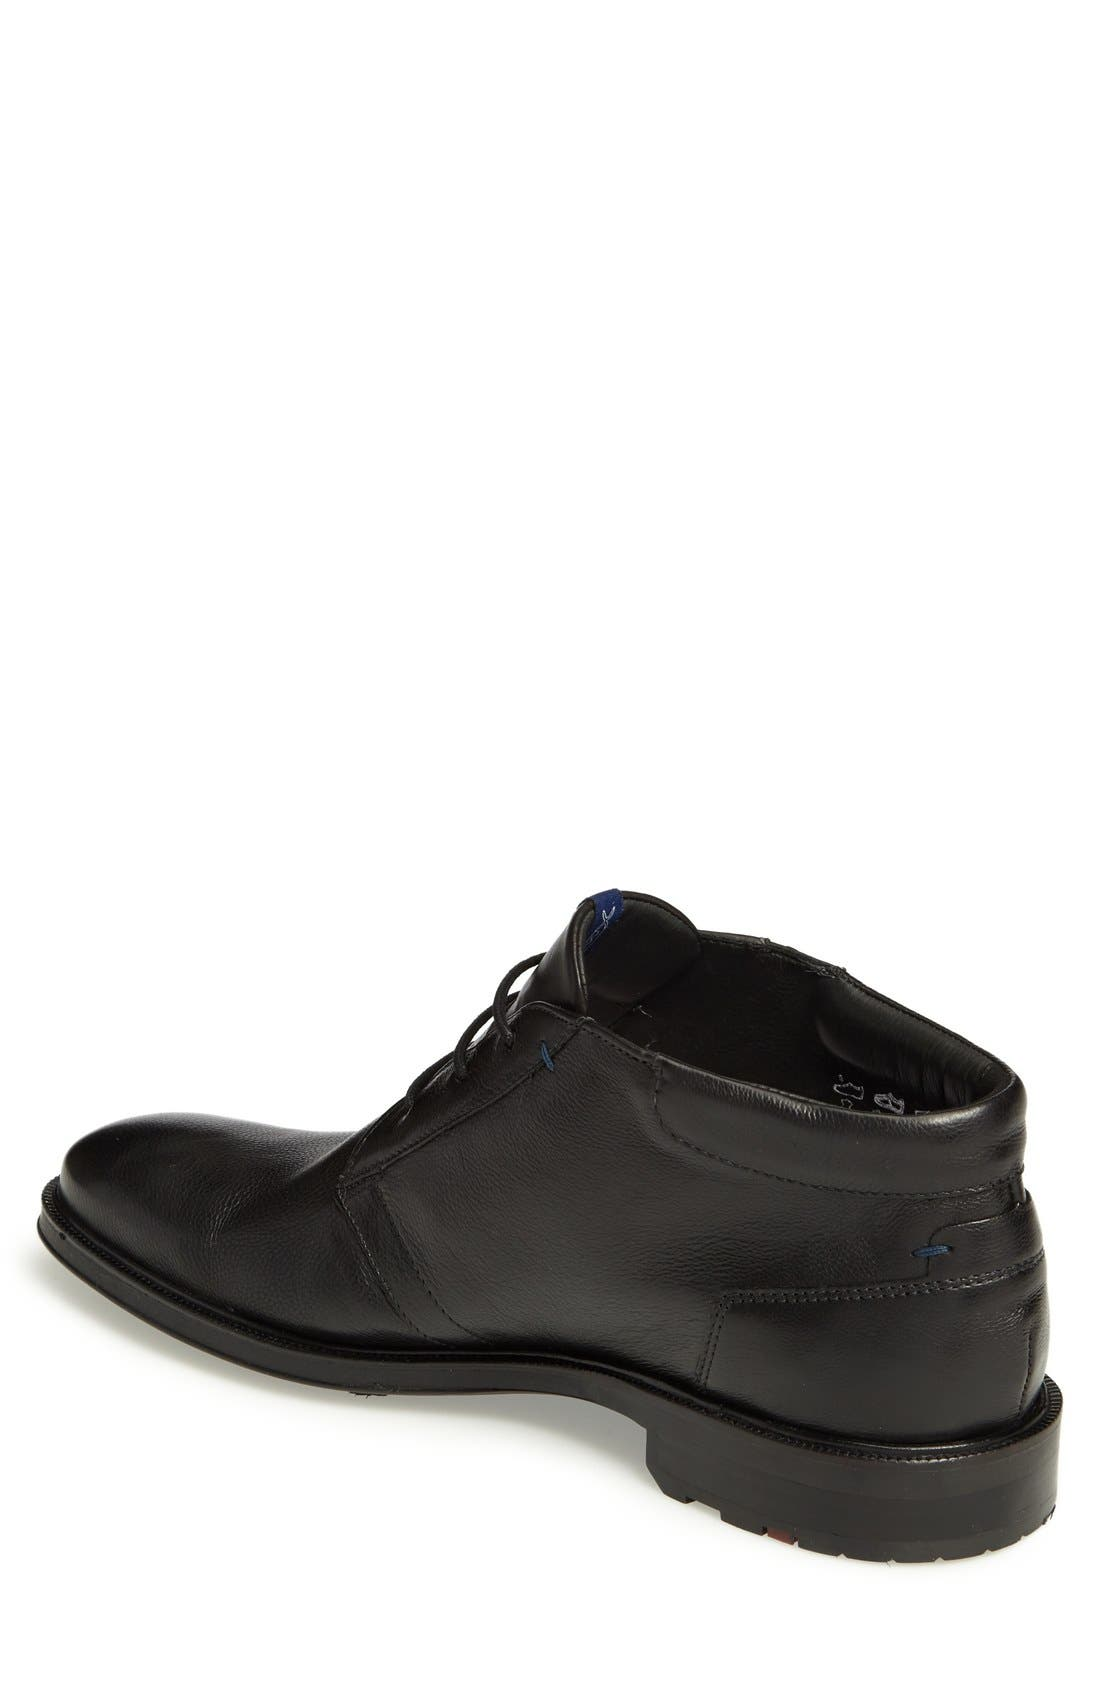 Marik Chukka Boot,                             Alternate thumbnail 2, color,                             Black